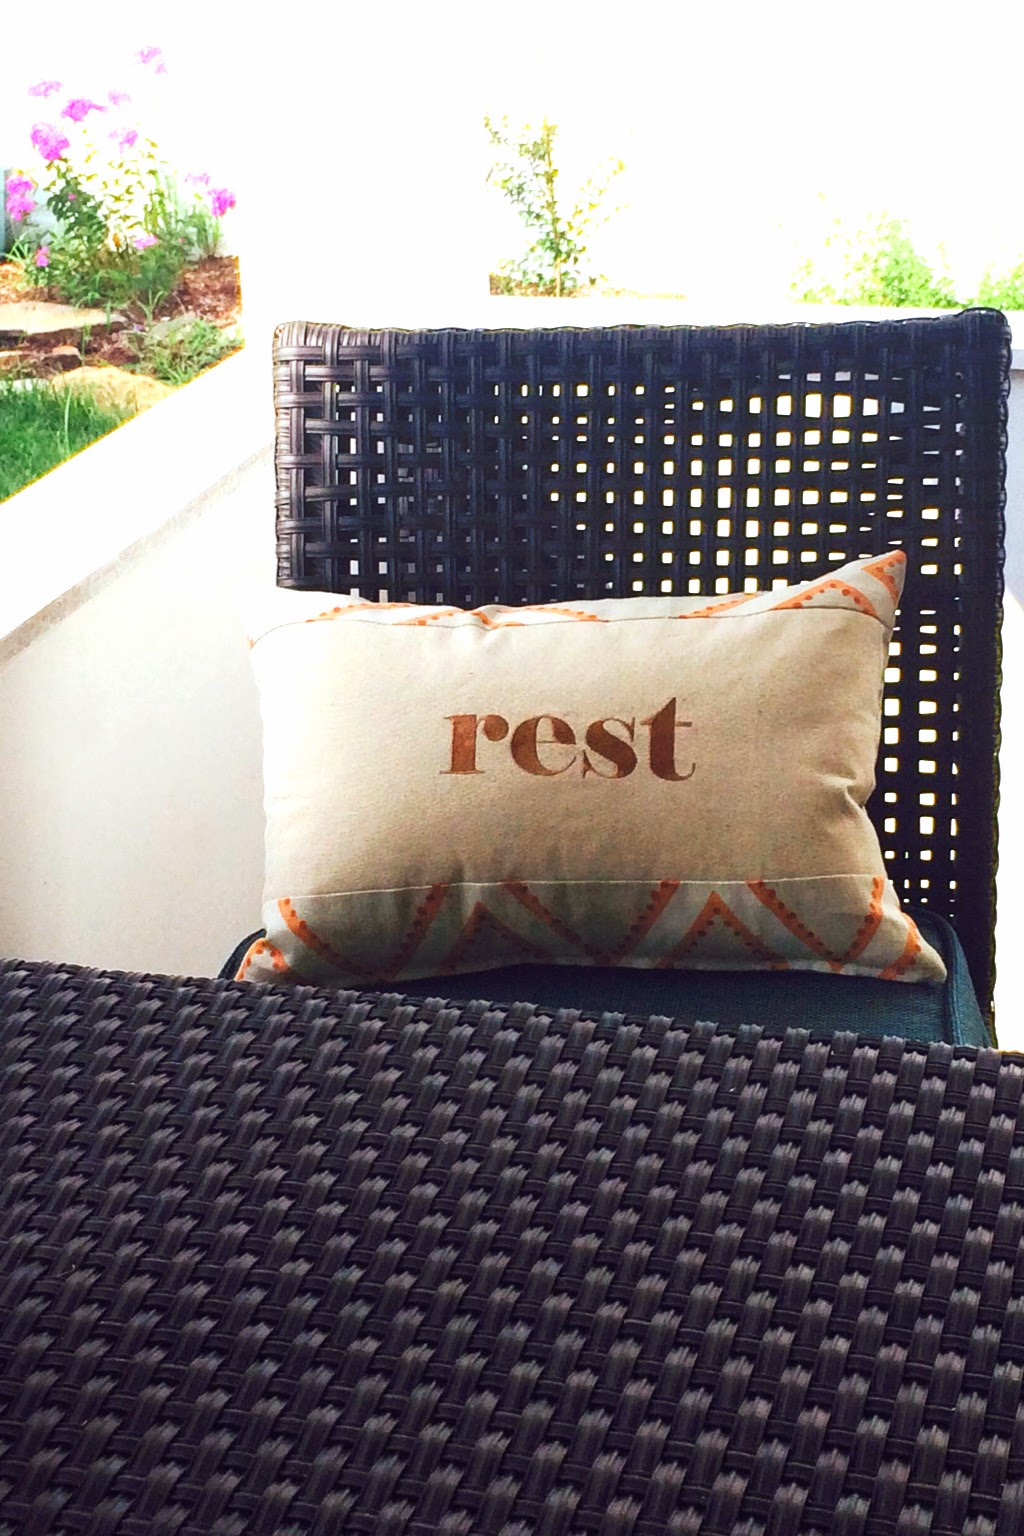 Rest Porch Message Pillow | Belinda Lee Designs | Personalized Pillows | Unify Mismatched Furniture